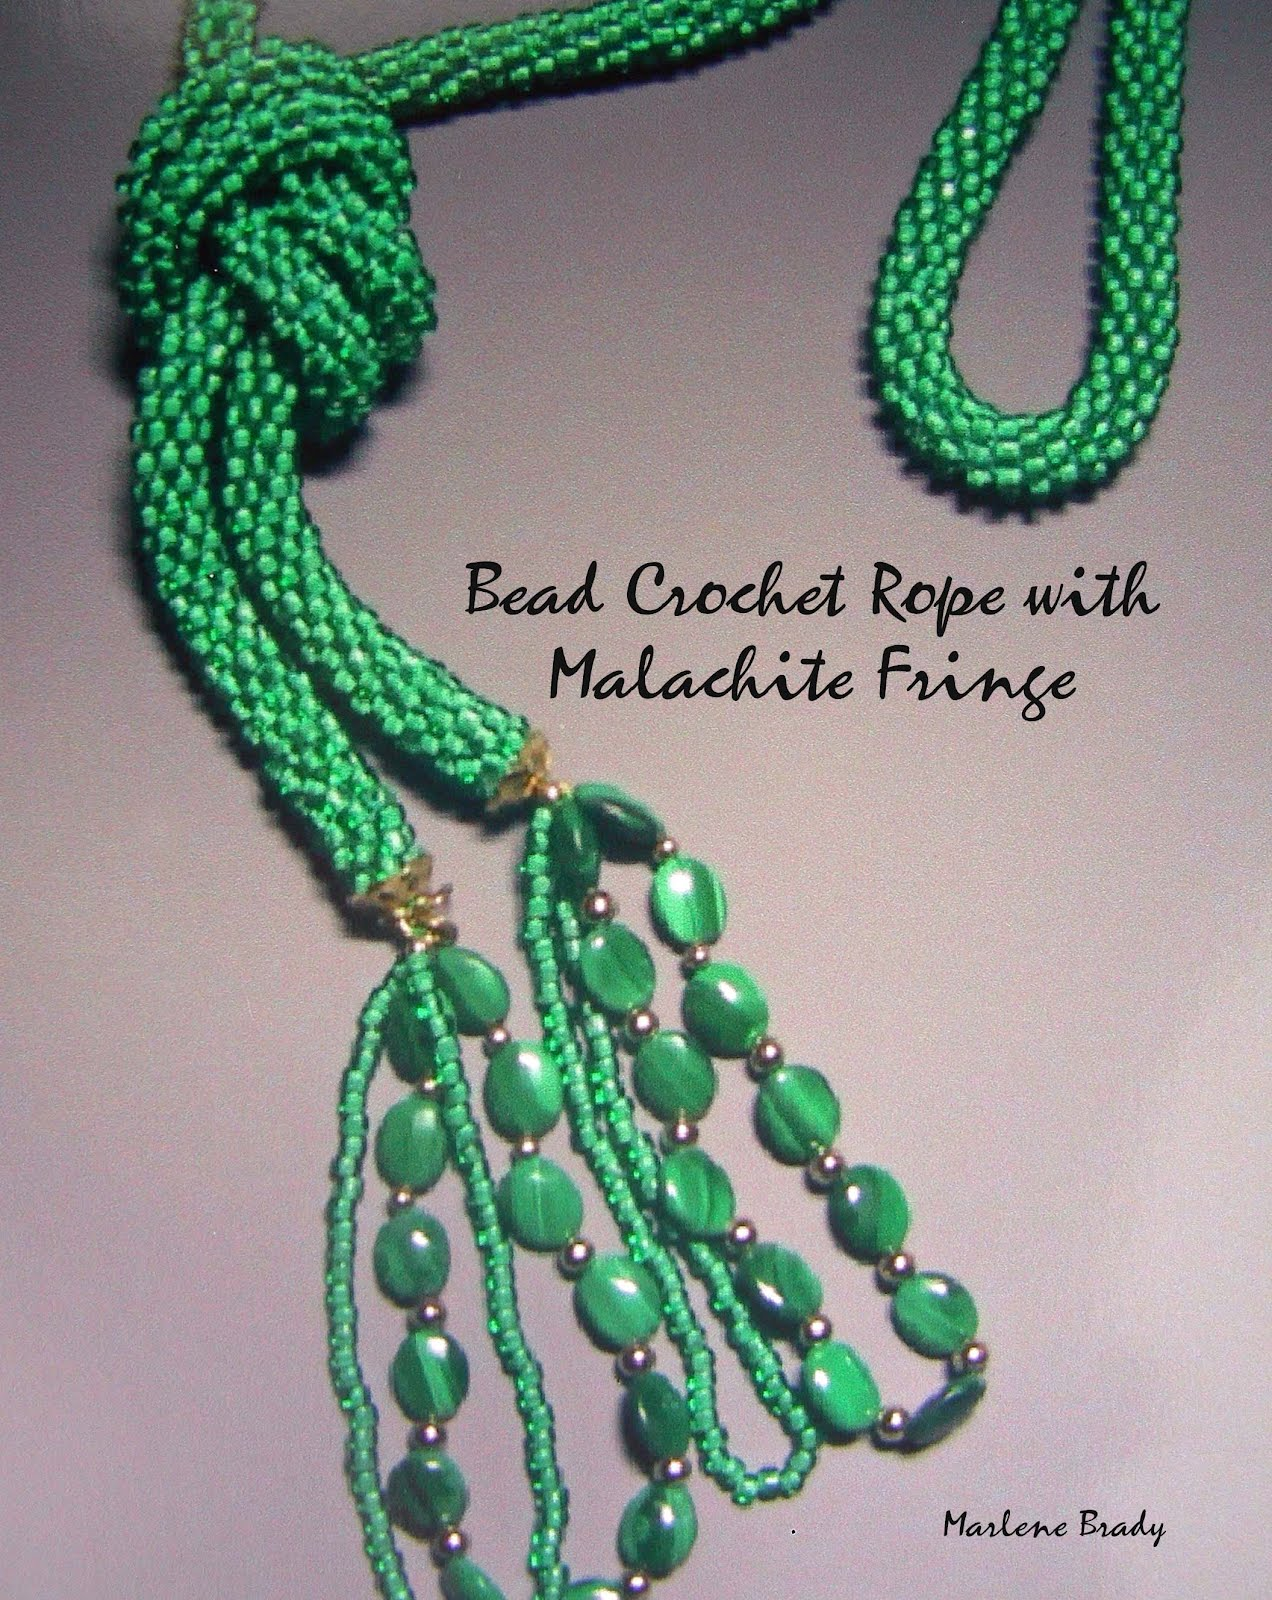 Crocheting Beads : Bead Crochet Oldies